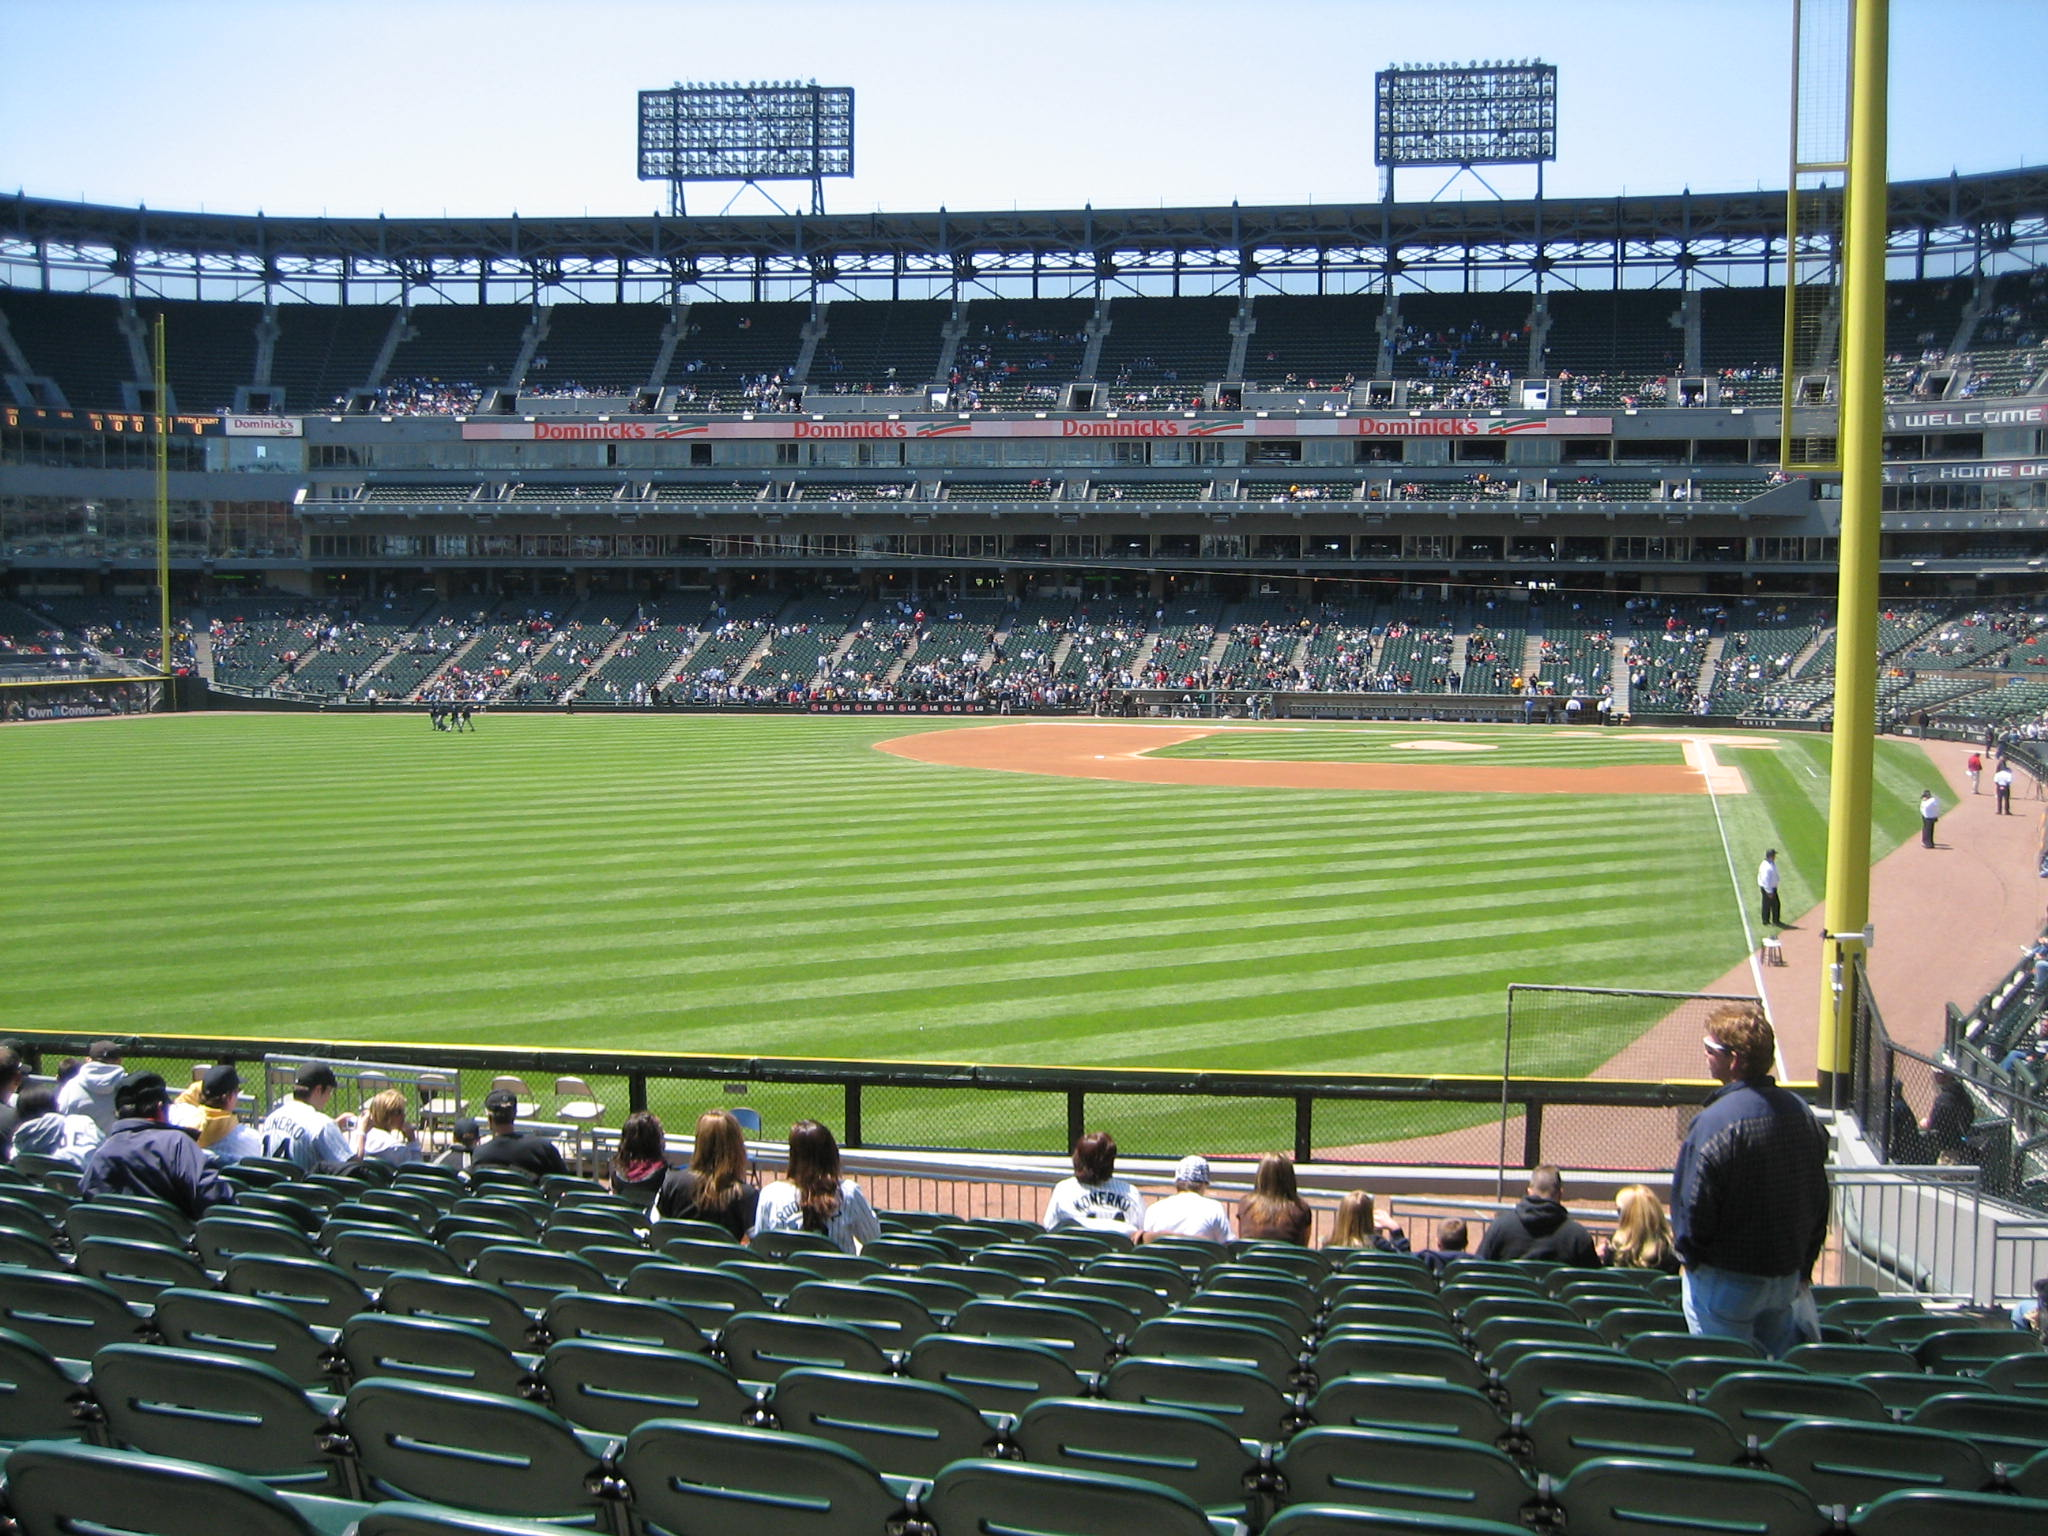 Cellular One Field File:u.s Cellular Field 17